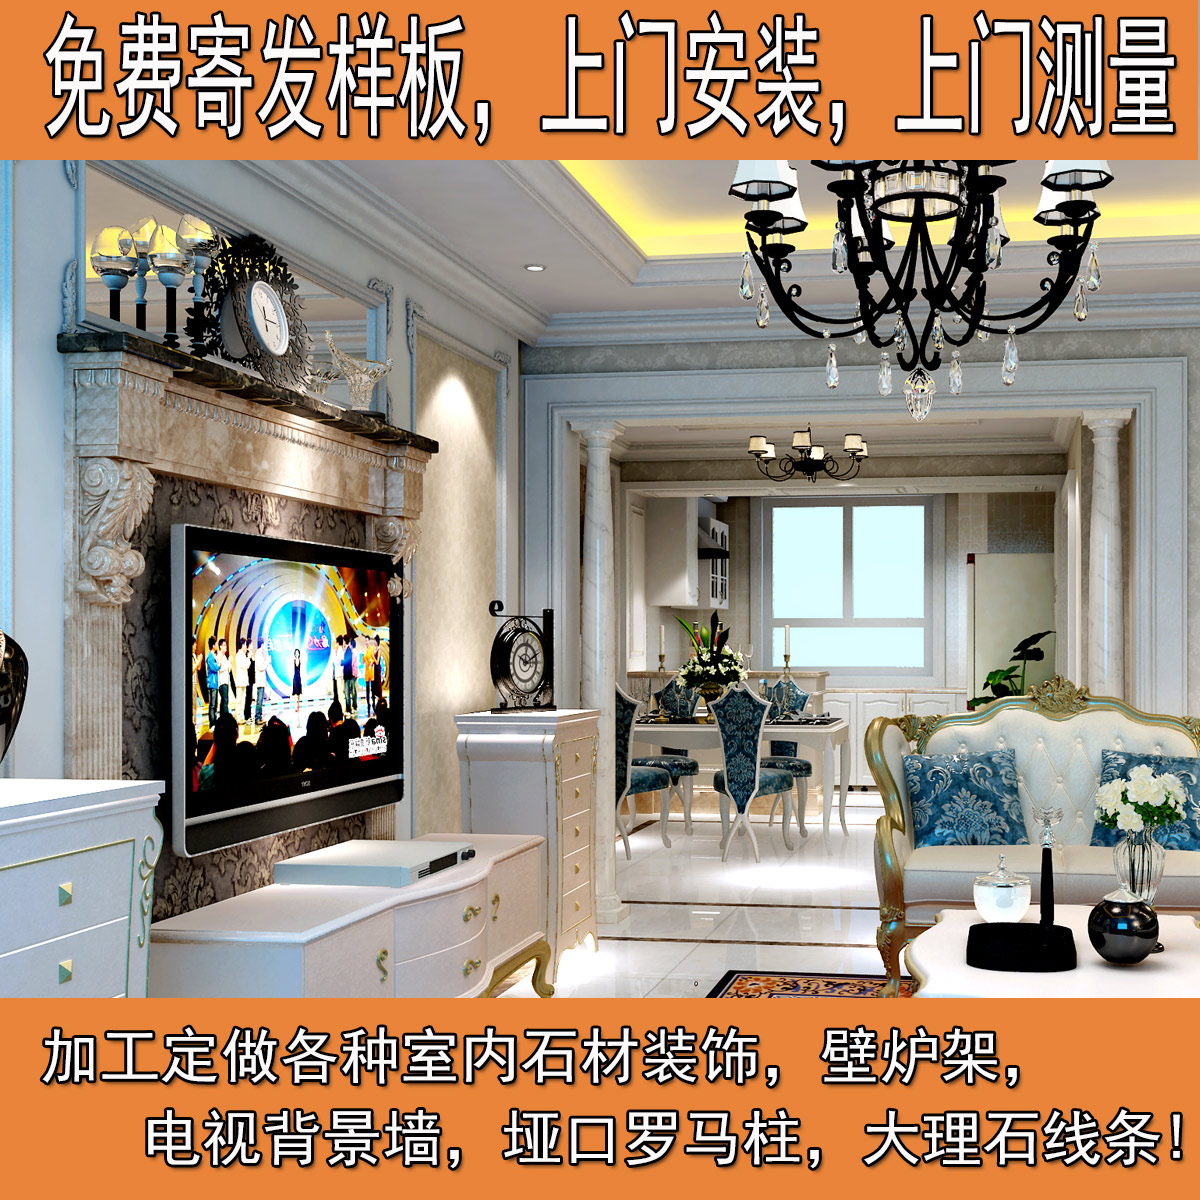 Yu feng sculpture marble fireplace mantel fireplace tv backdrop continental carved roman custom stone processing